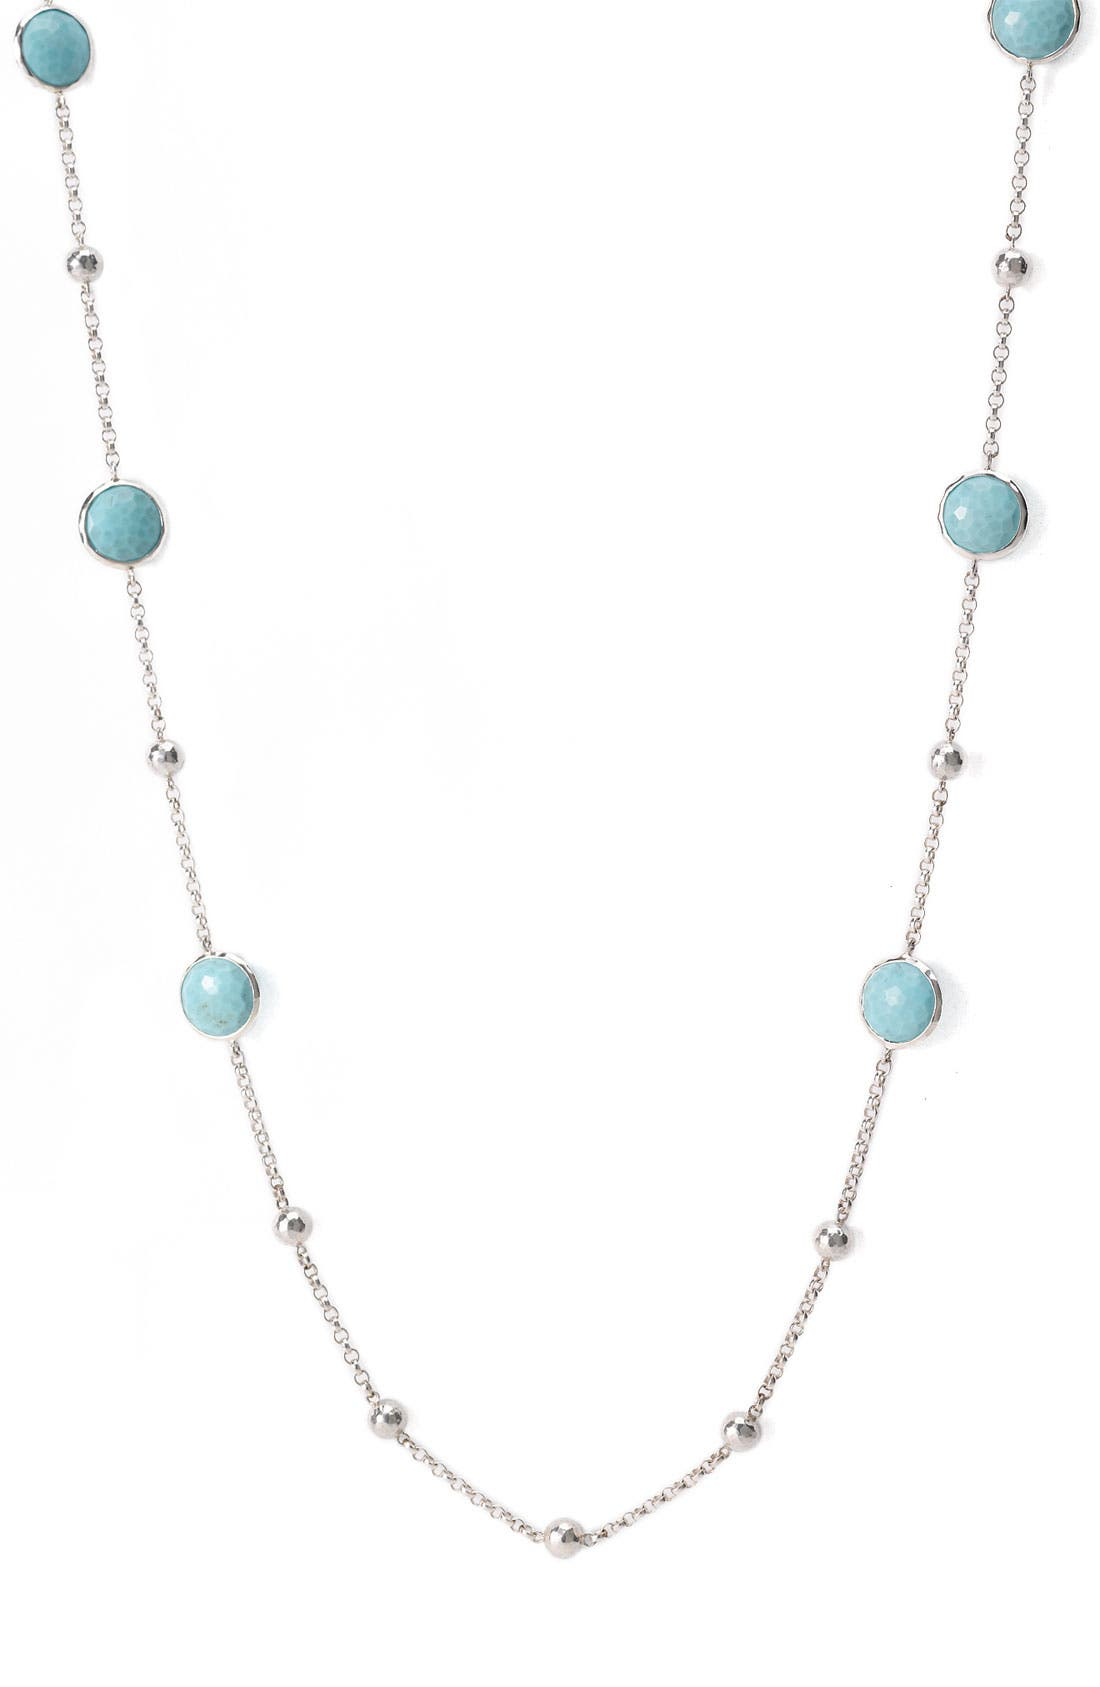 'Rock Candy - Mini Lollipop' Long Necklace,                             Main thumbnail 1, color,                             Silver - Turquoise